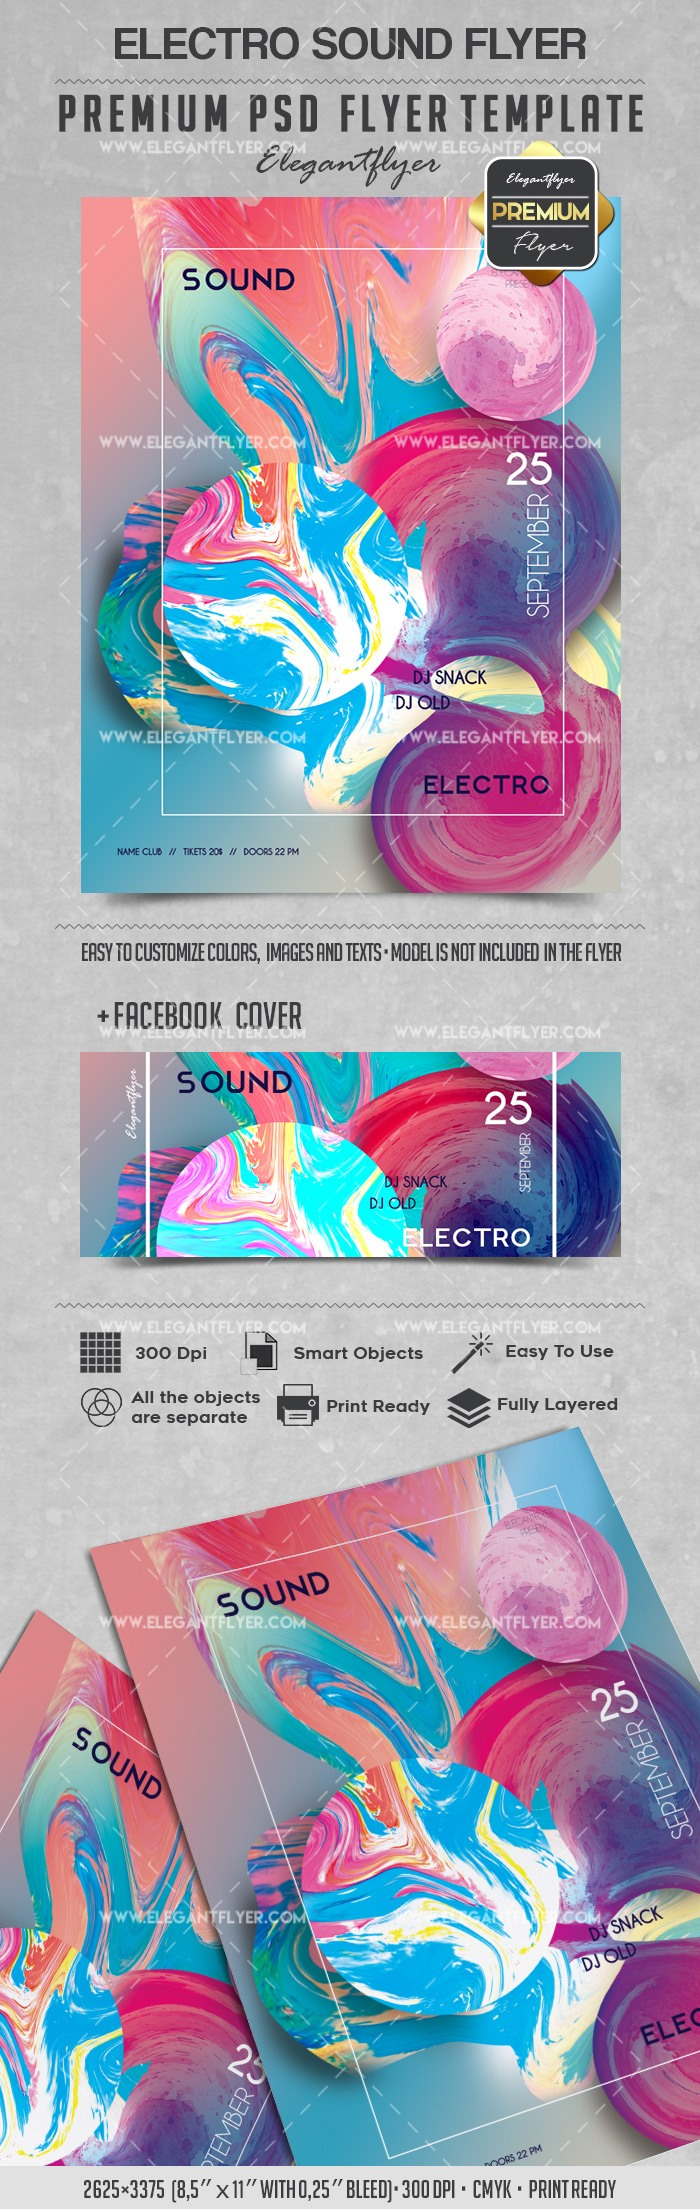 Flyer for Electro Sound Party